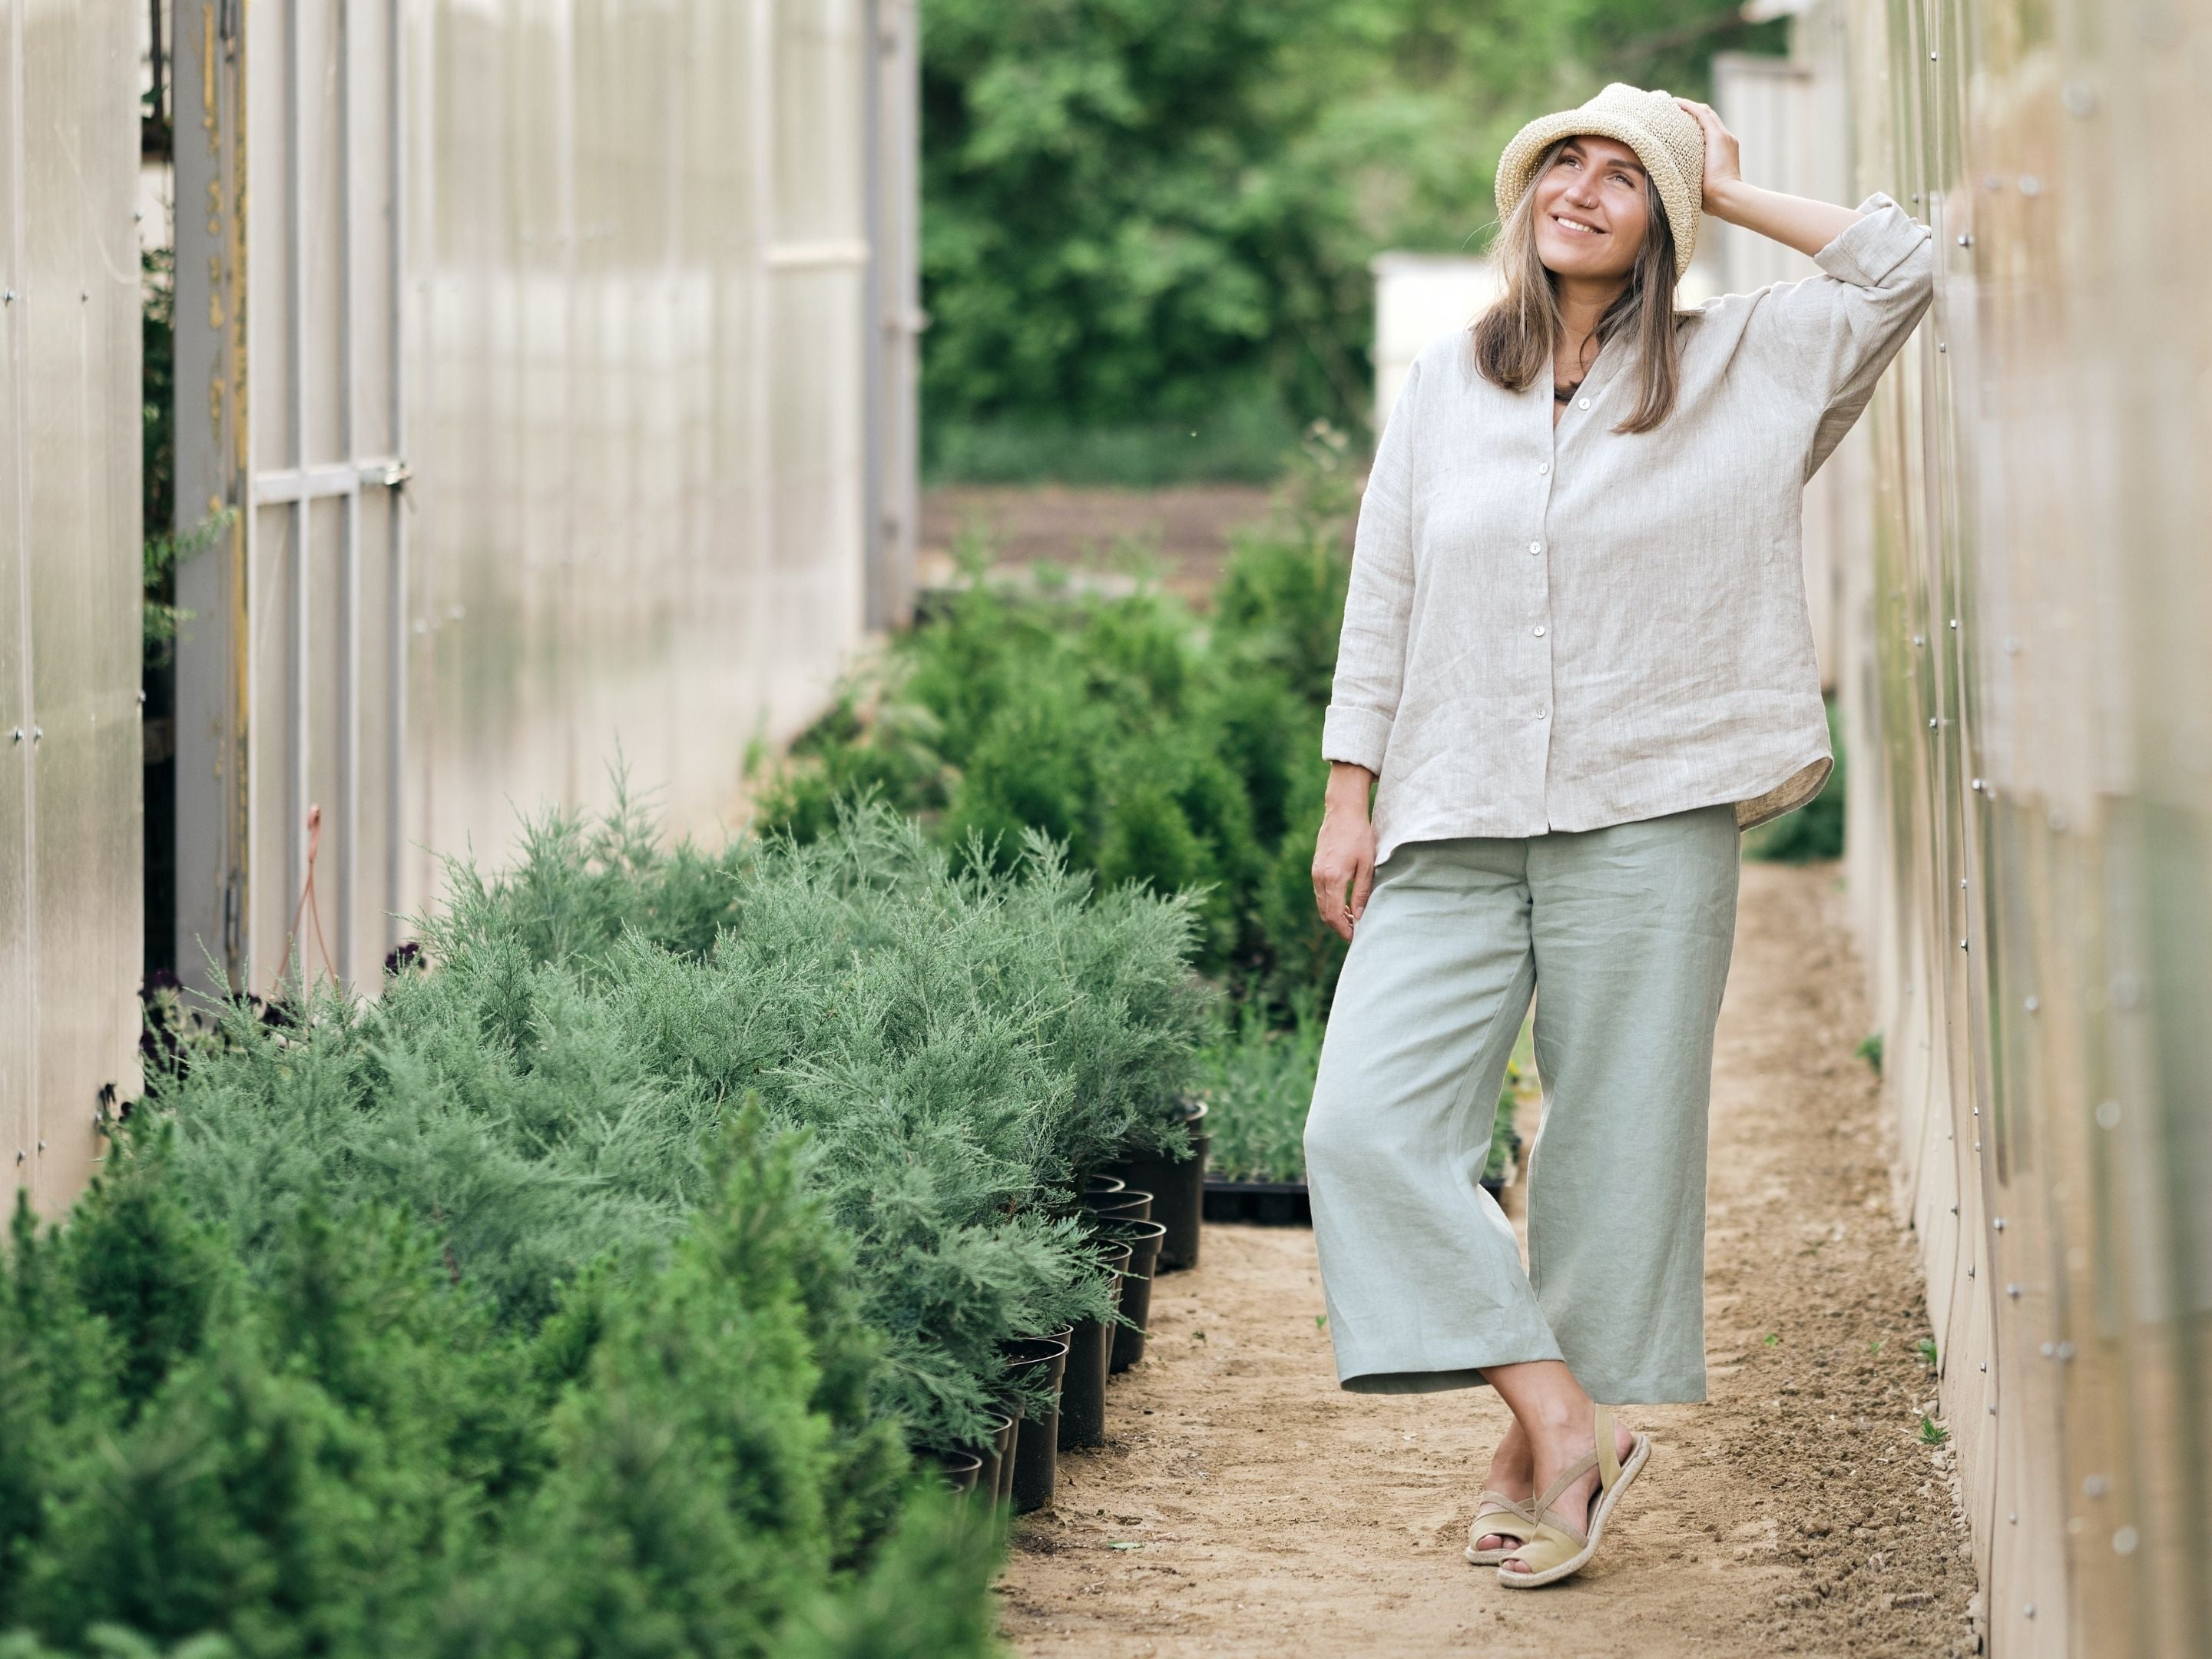 Casual summer tunic and pants in linen fabrics